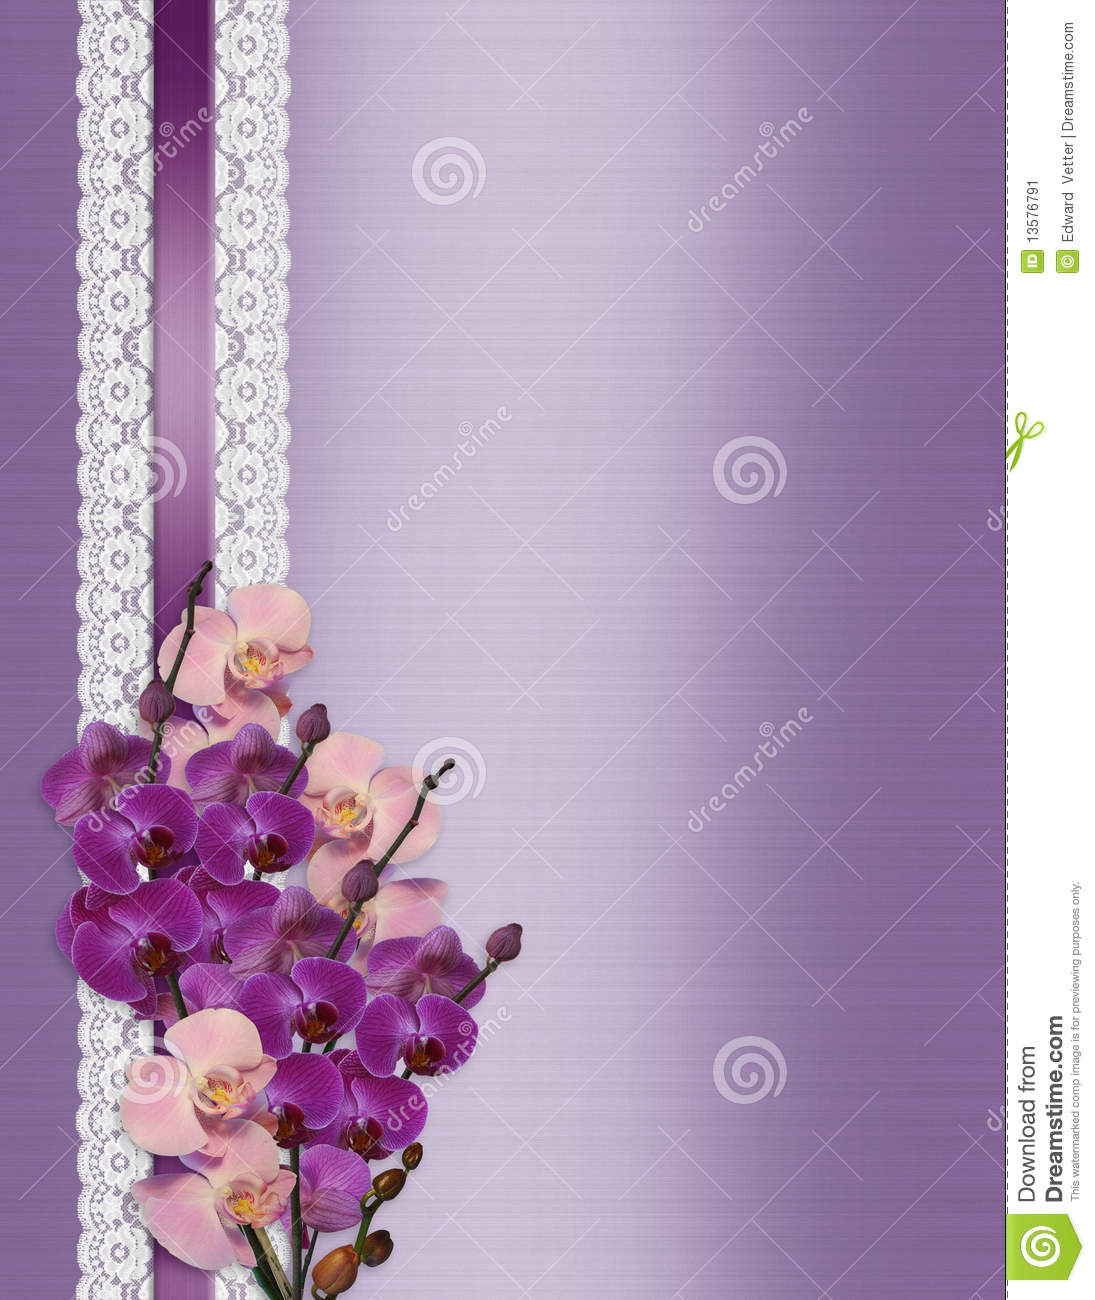 wedding invitation orchids lavender satin 13576791 wedding invitation orchids on lavender satin stock image image,Lavender Wedding Invitation Templates